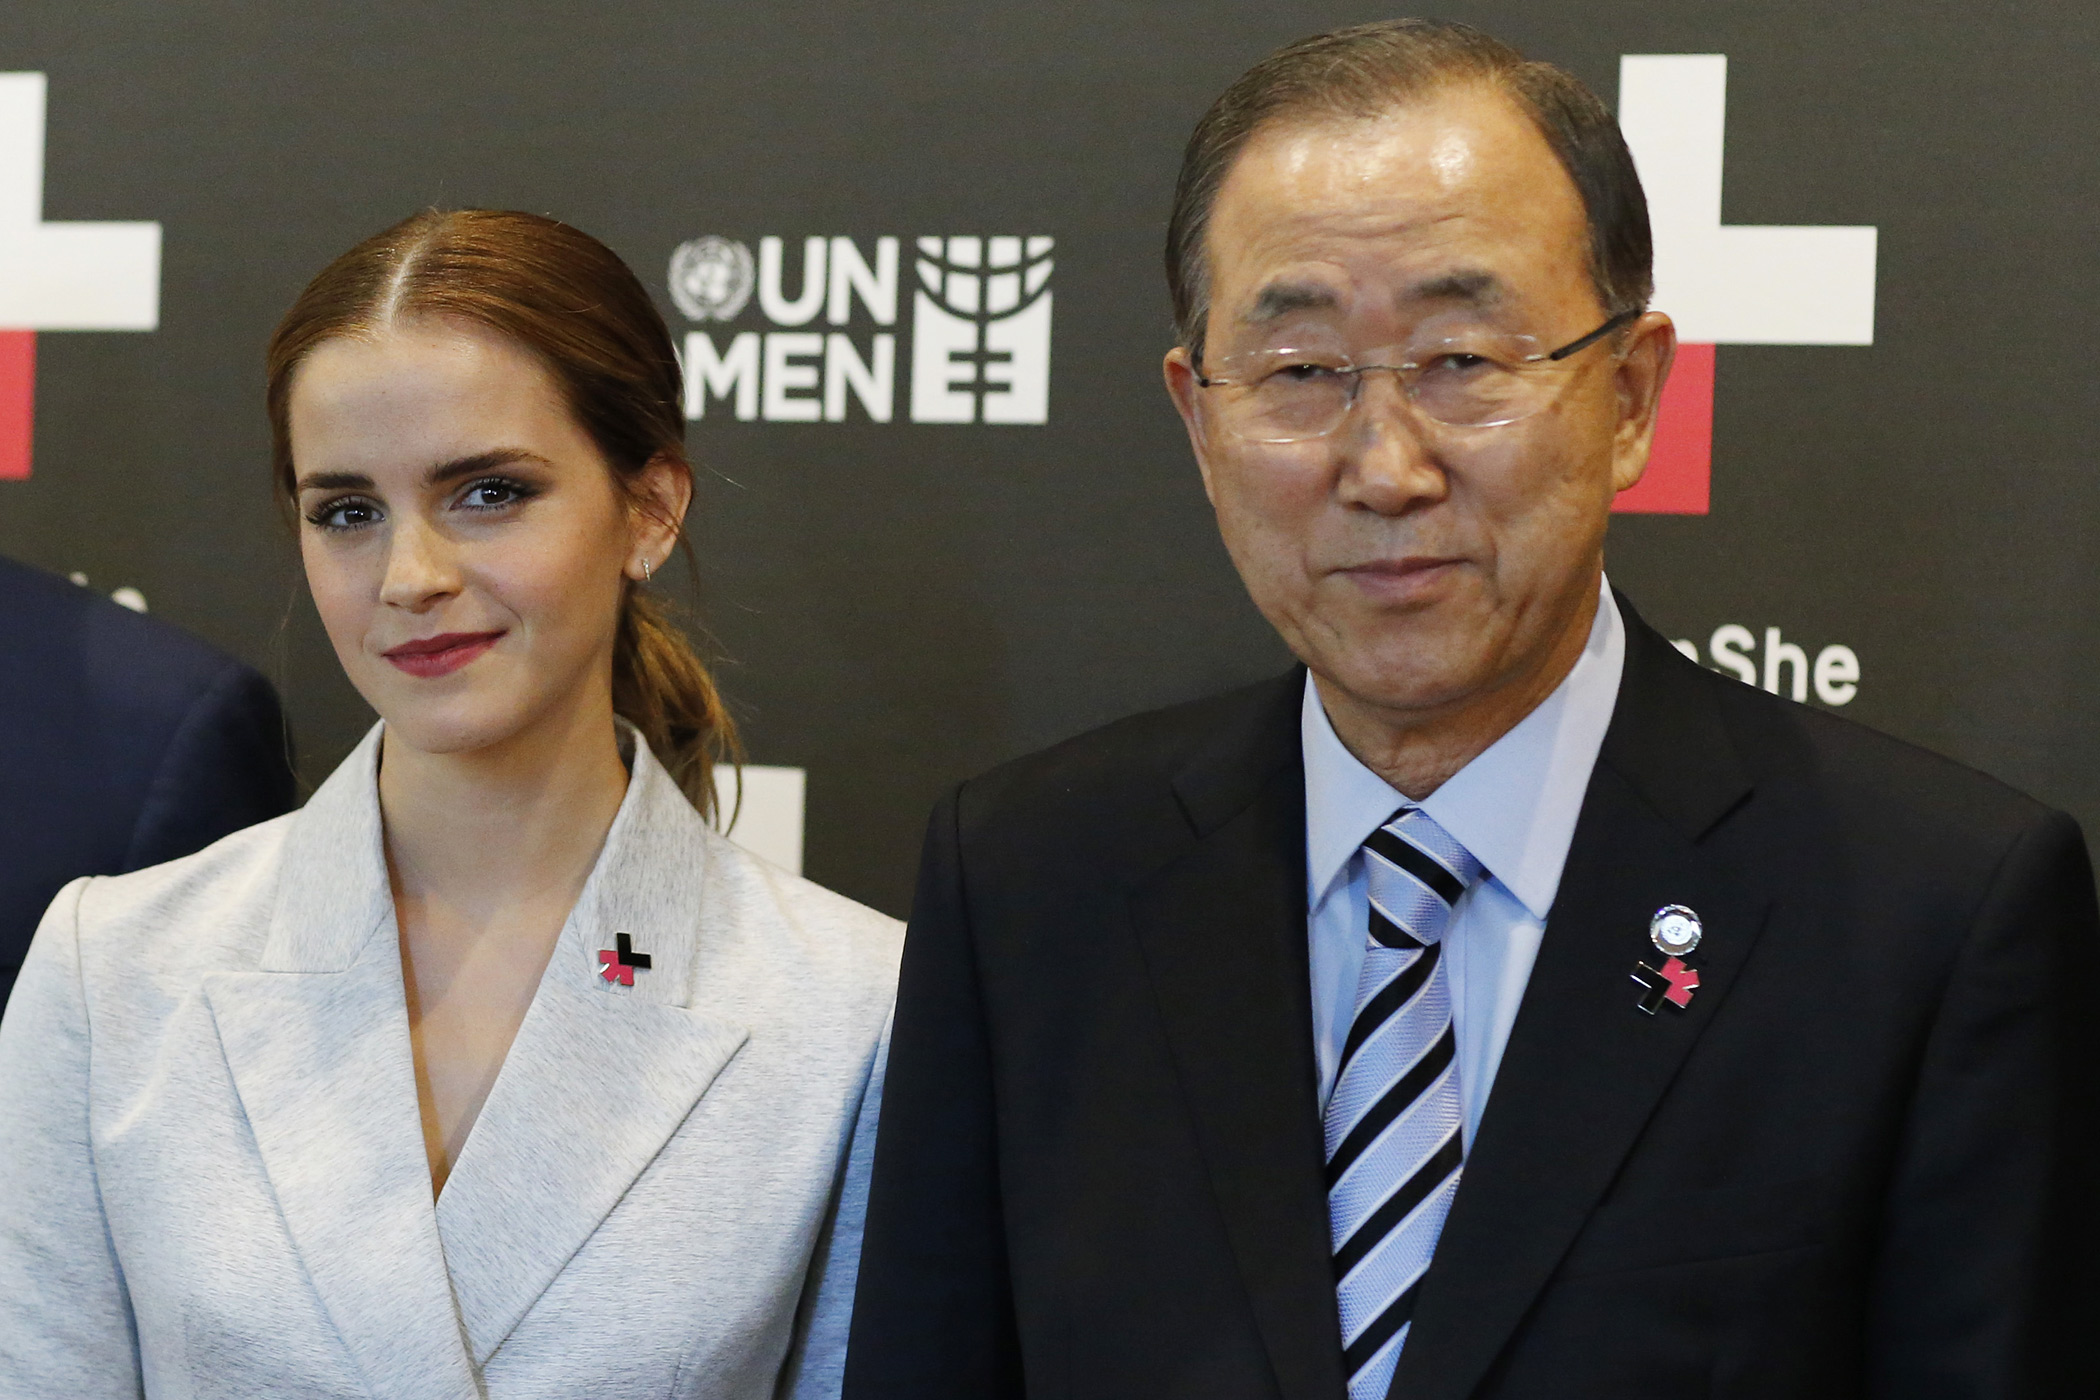 UN Women Goodwill Ambassador Emma Watson and United Nations Secretary General Ban Ki-moon pose for a picture while they attend the HeForShe campaign launch at the United Nations on September 20, 2014 in New York.